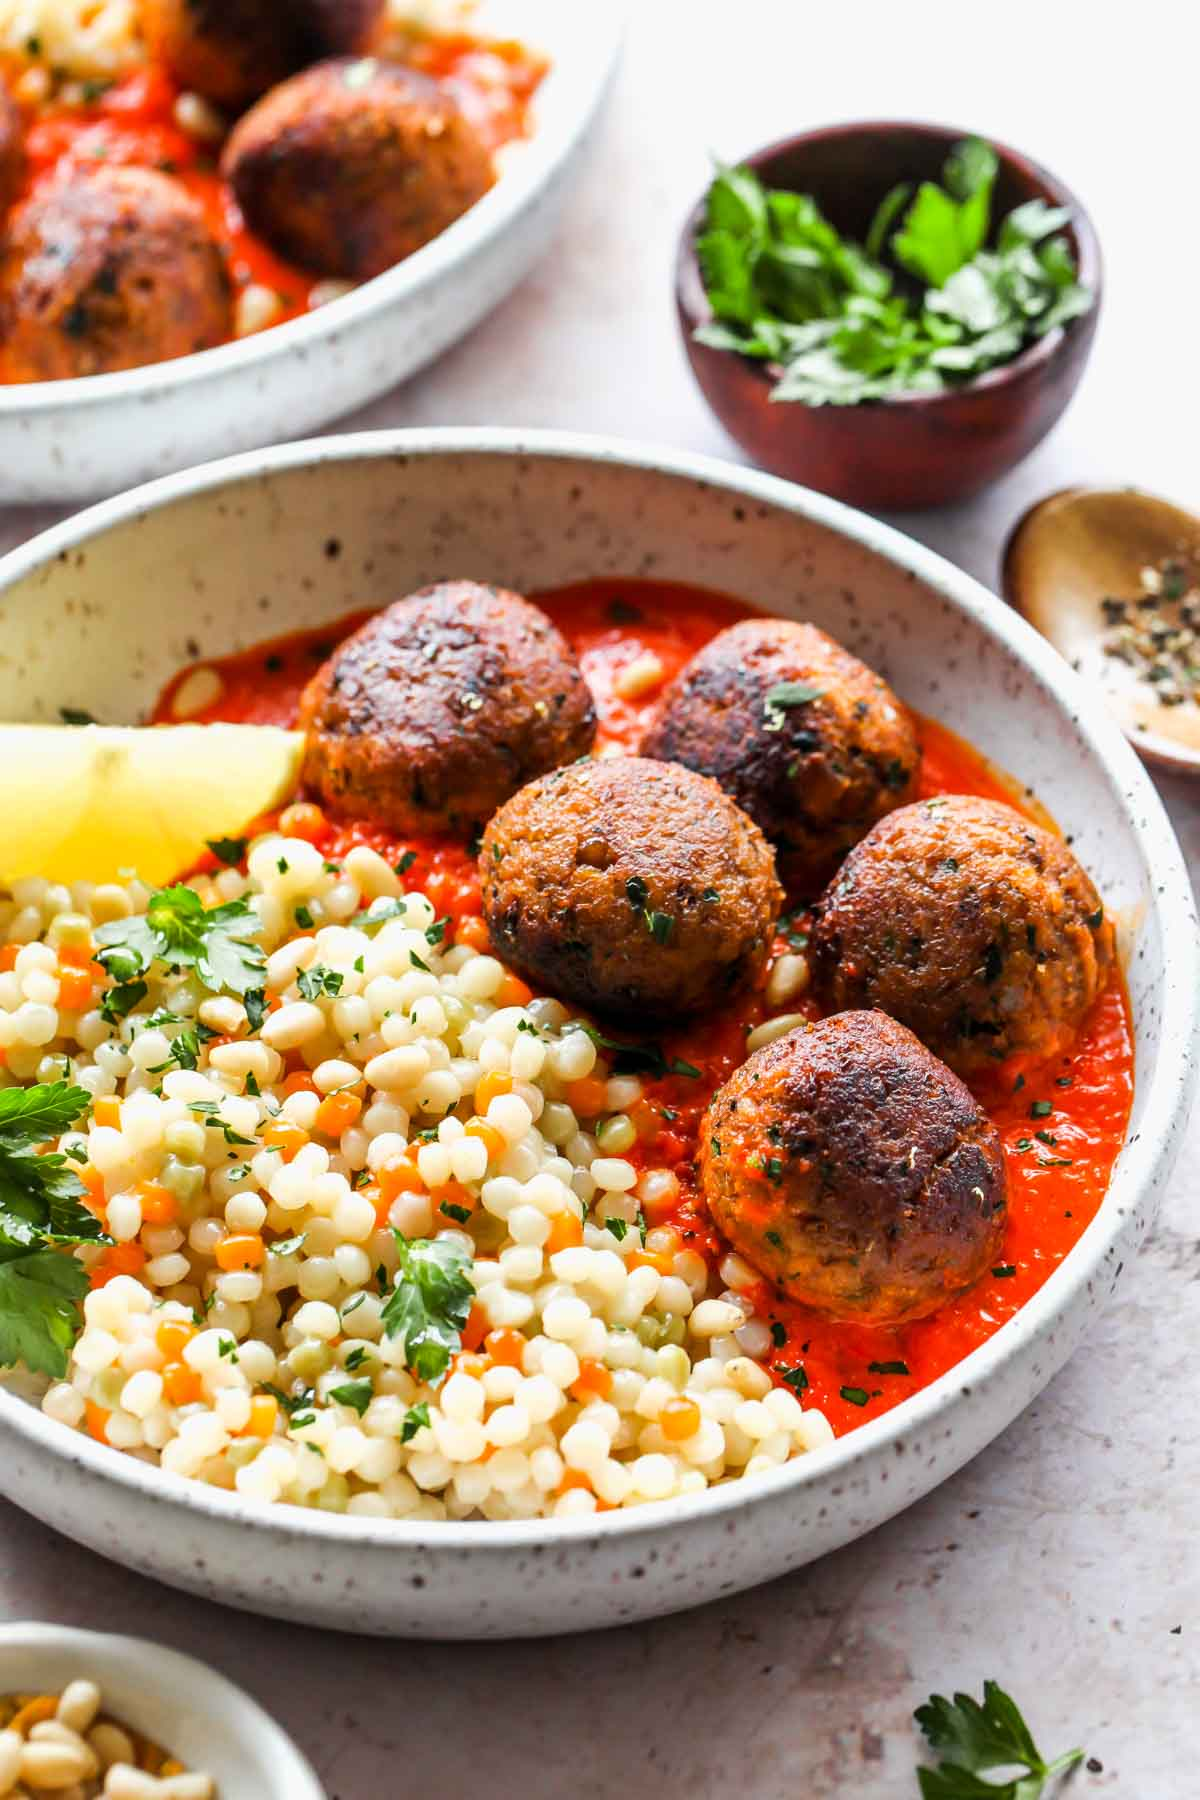 Couscous and veggie meatballs on a white plate topped with parsley